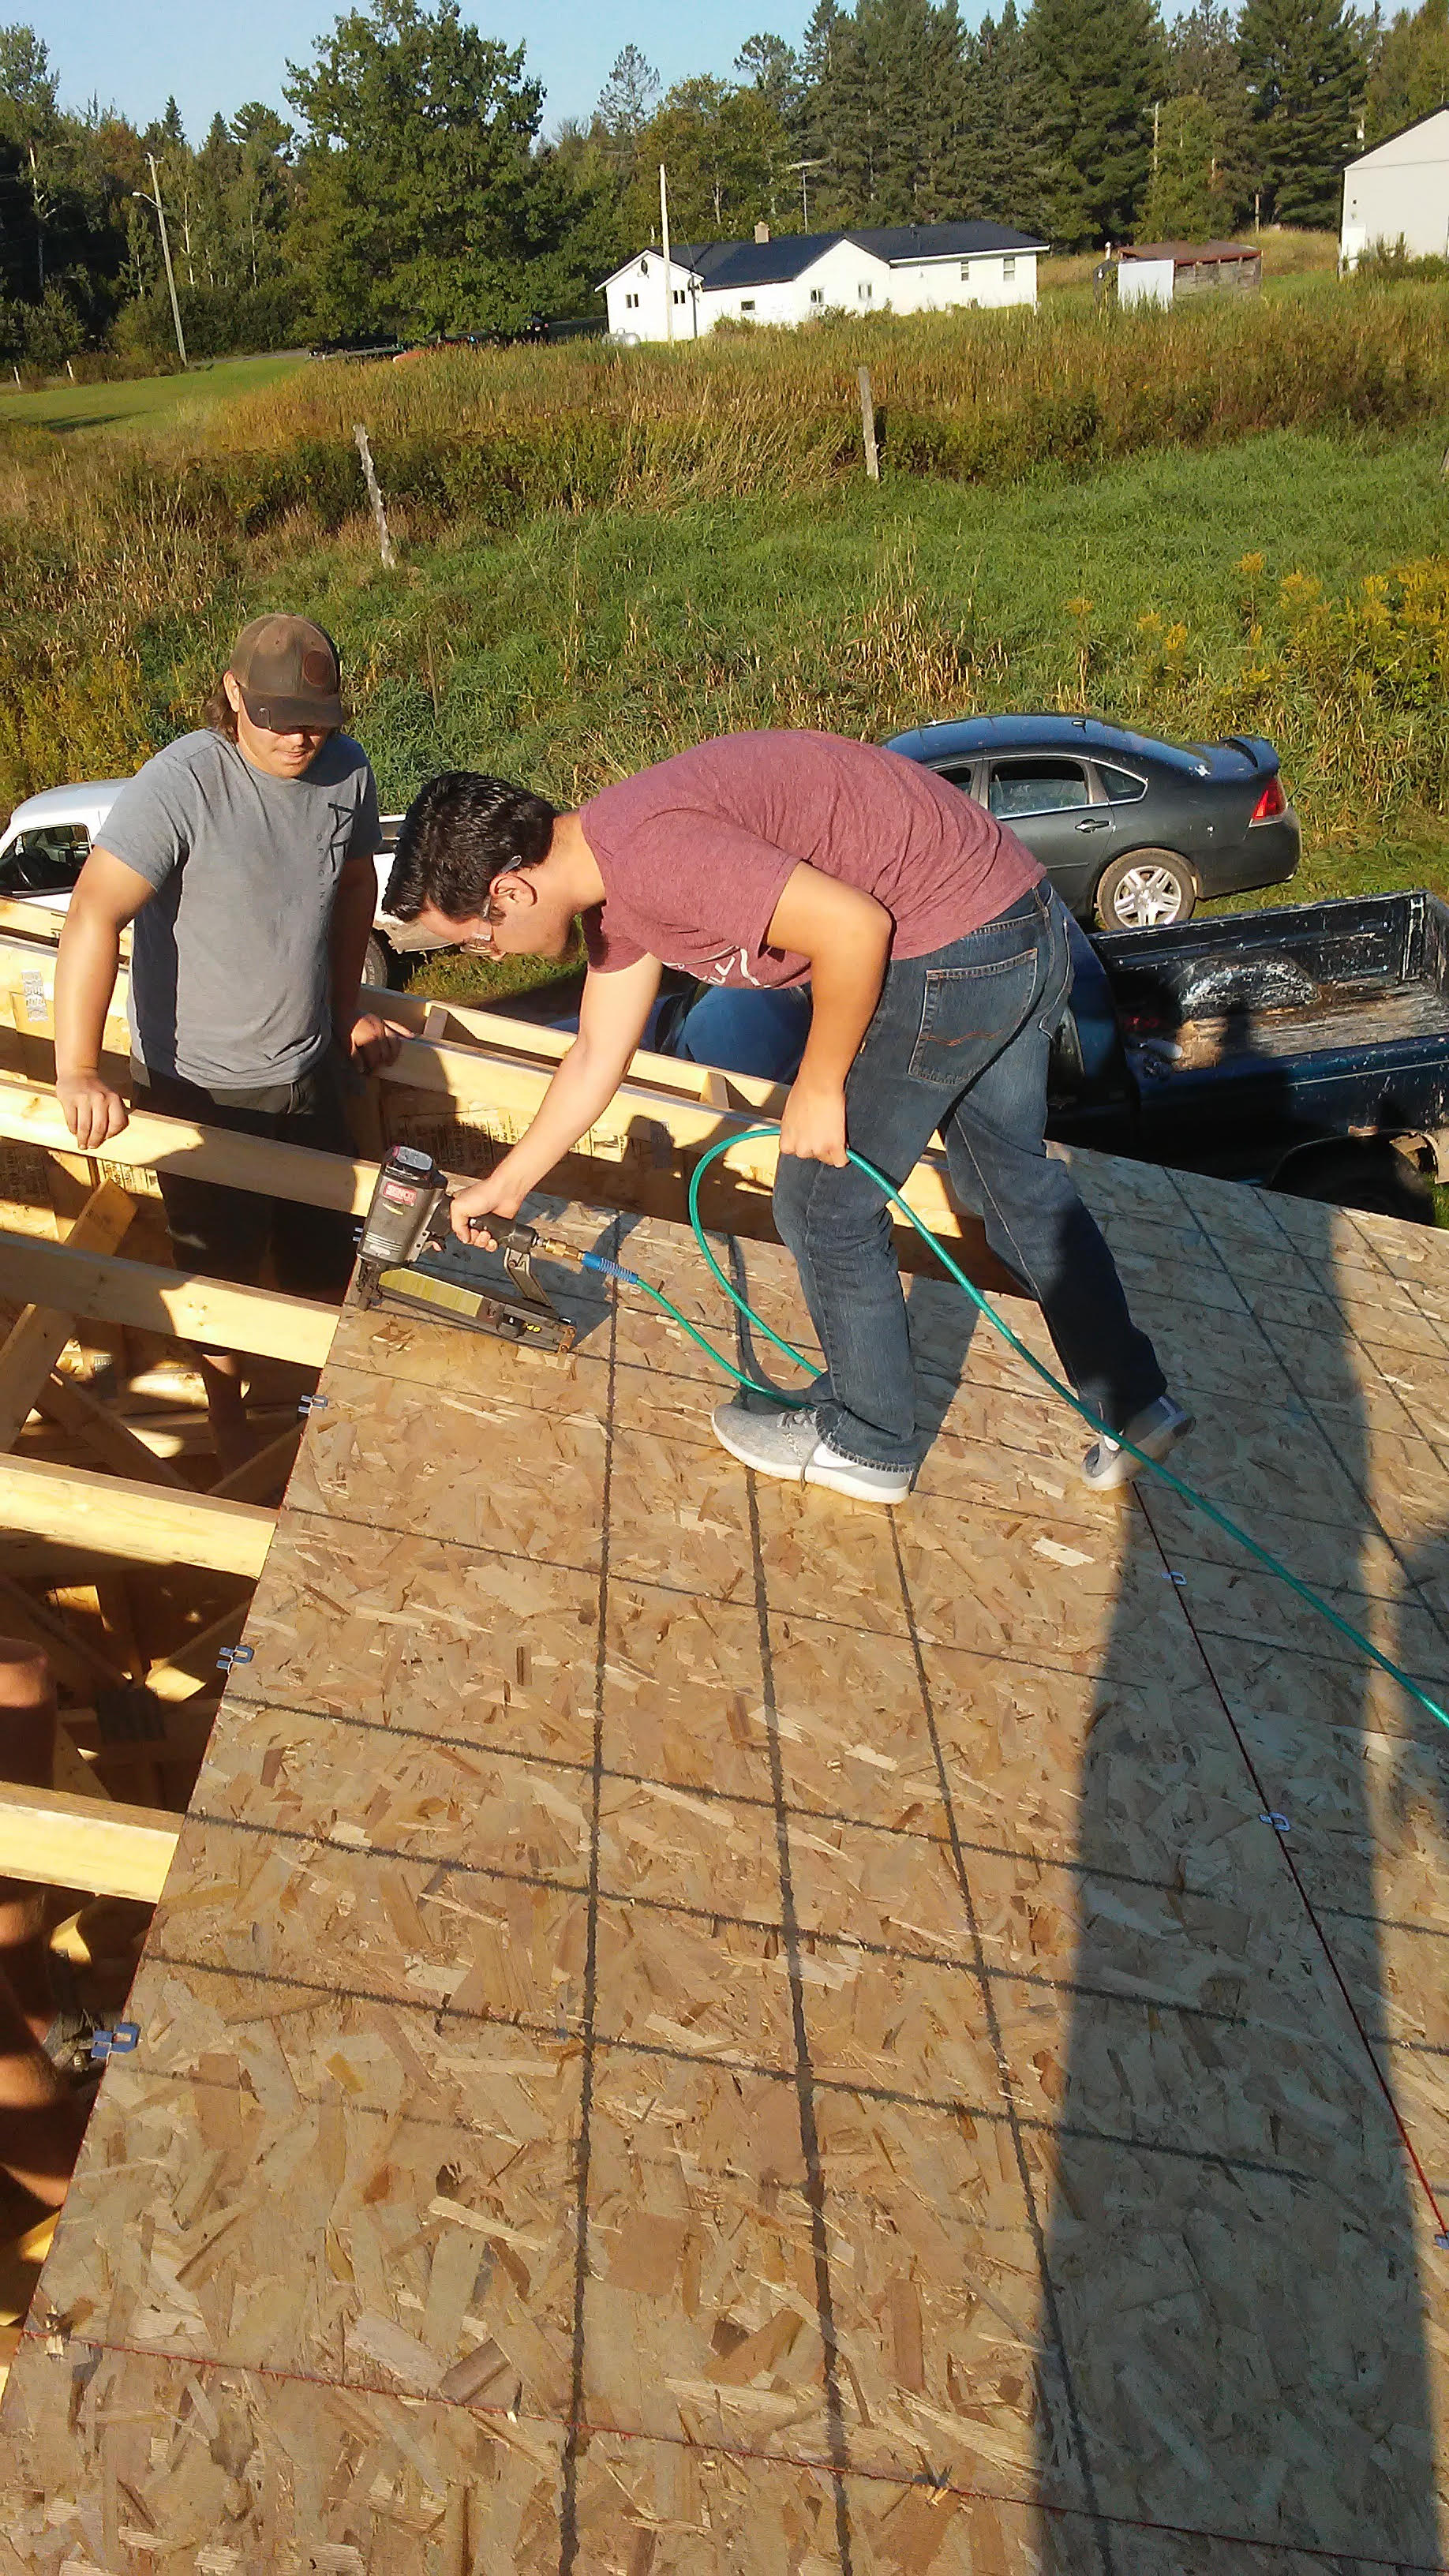 Roofing panel installation with pneumatic nail gun